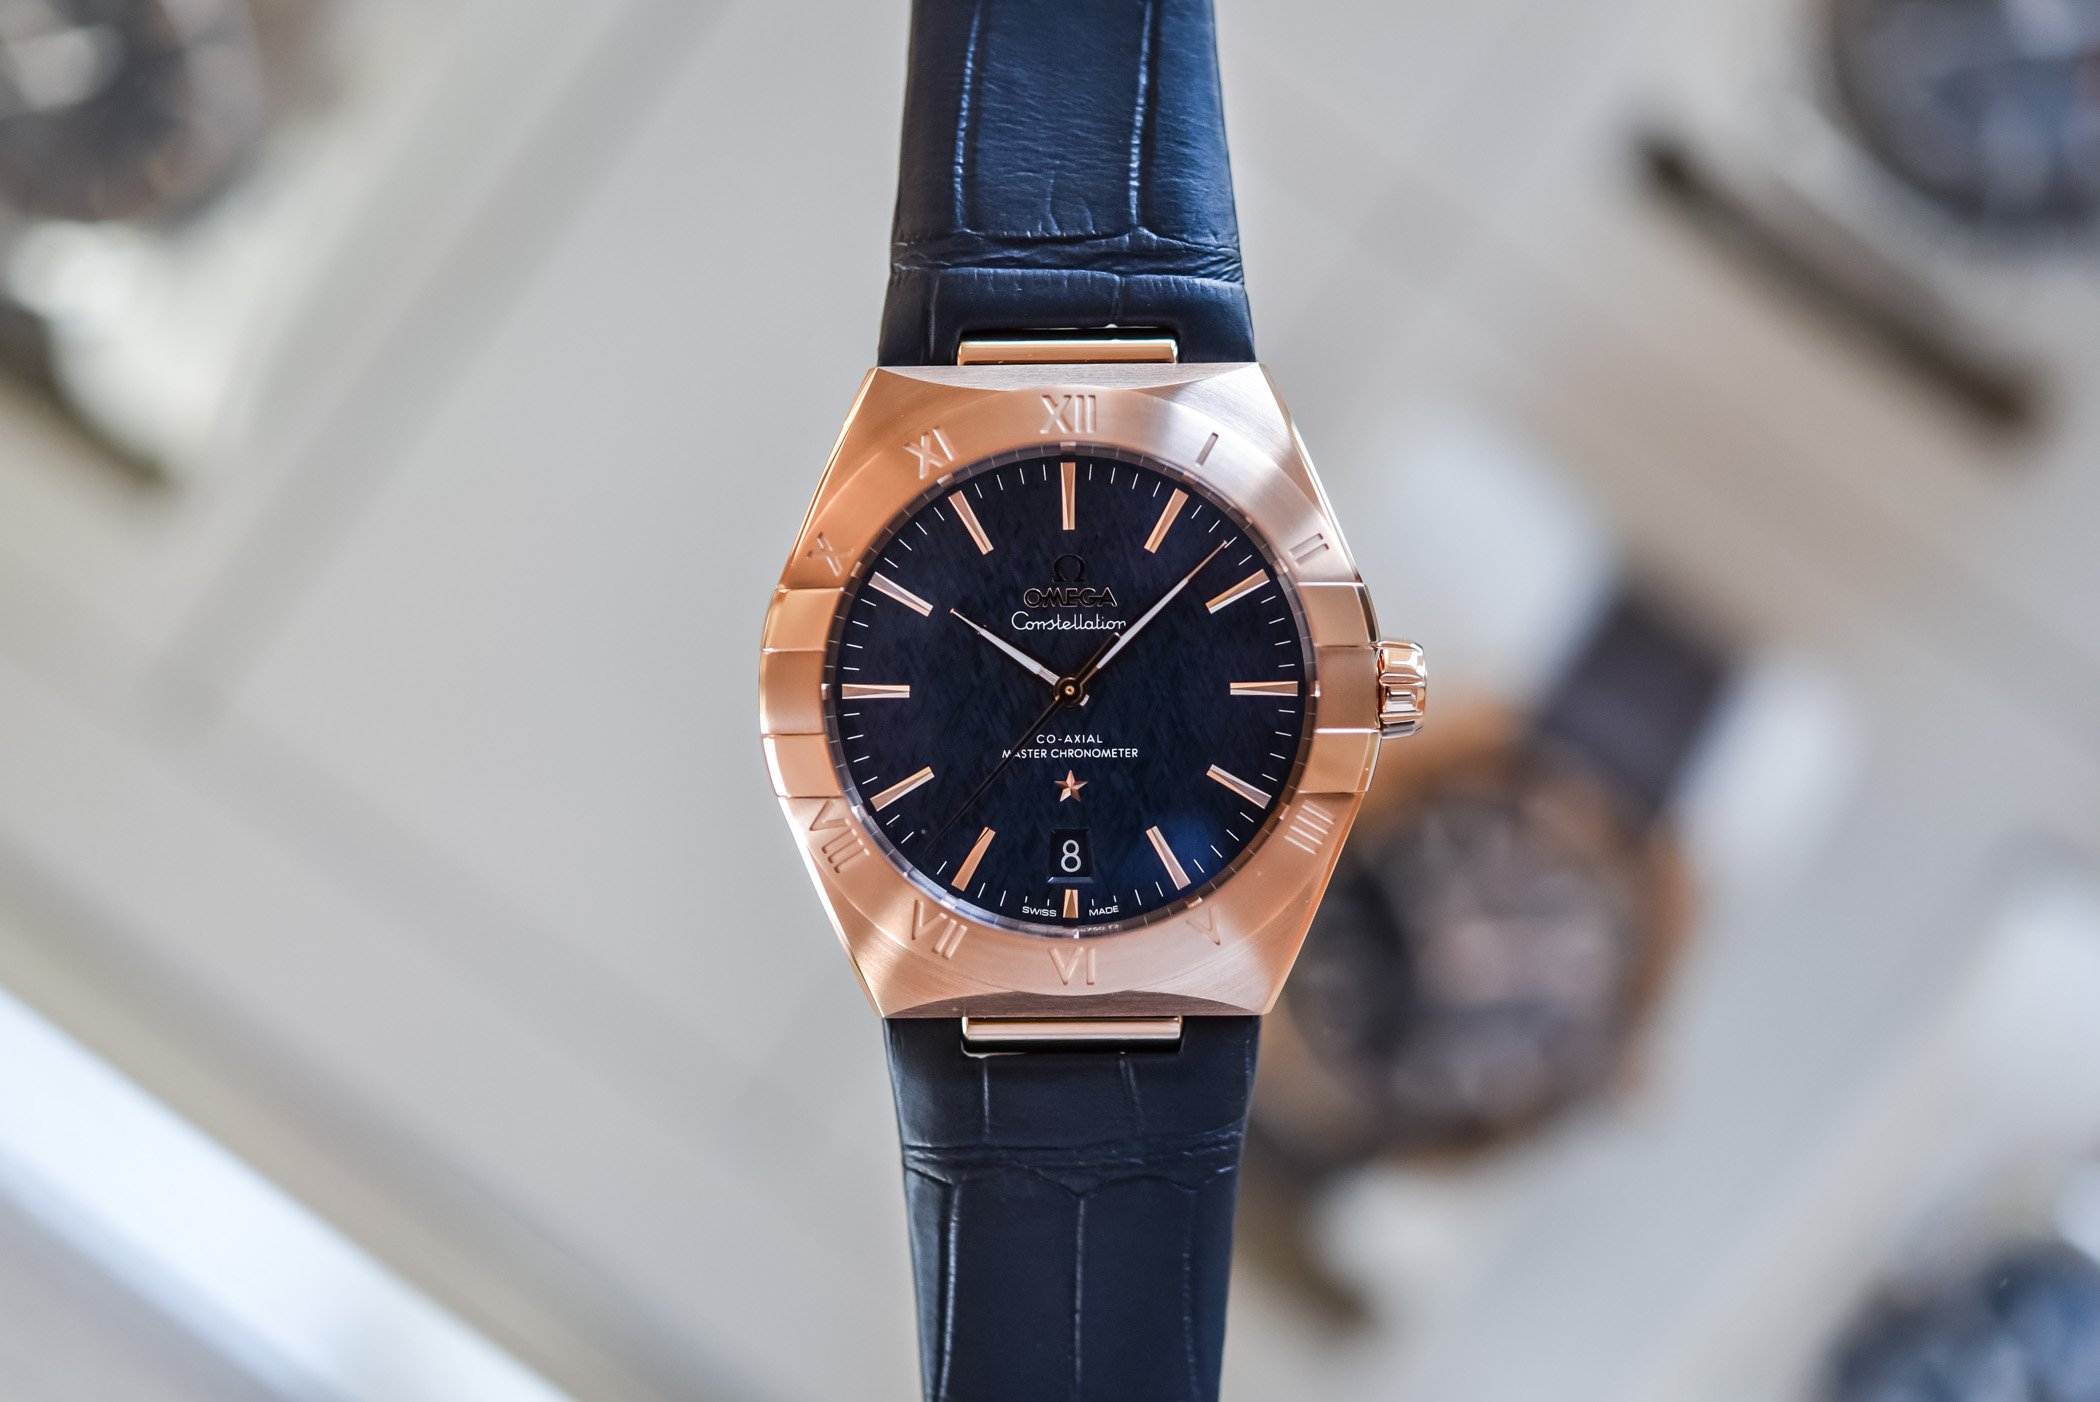 2020-Omega-Constellation-Co-Axial-Master-Chronometer-39mm-review-3.jpg